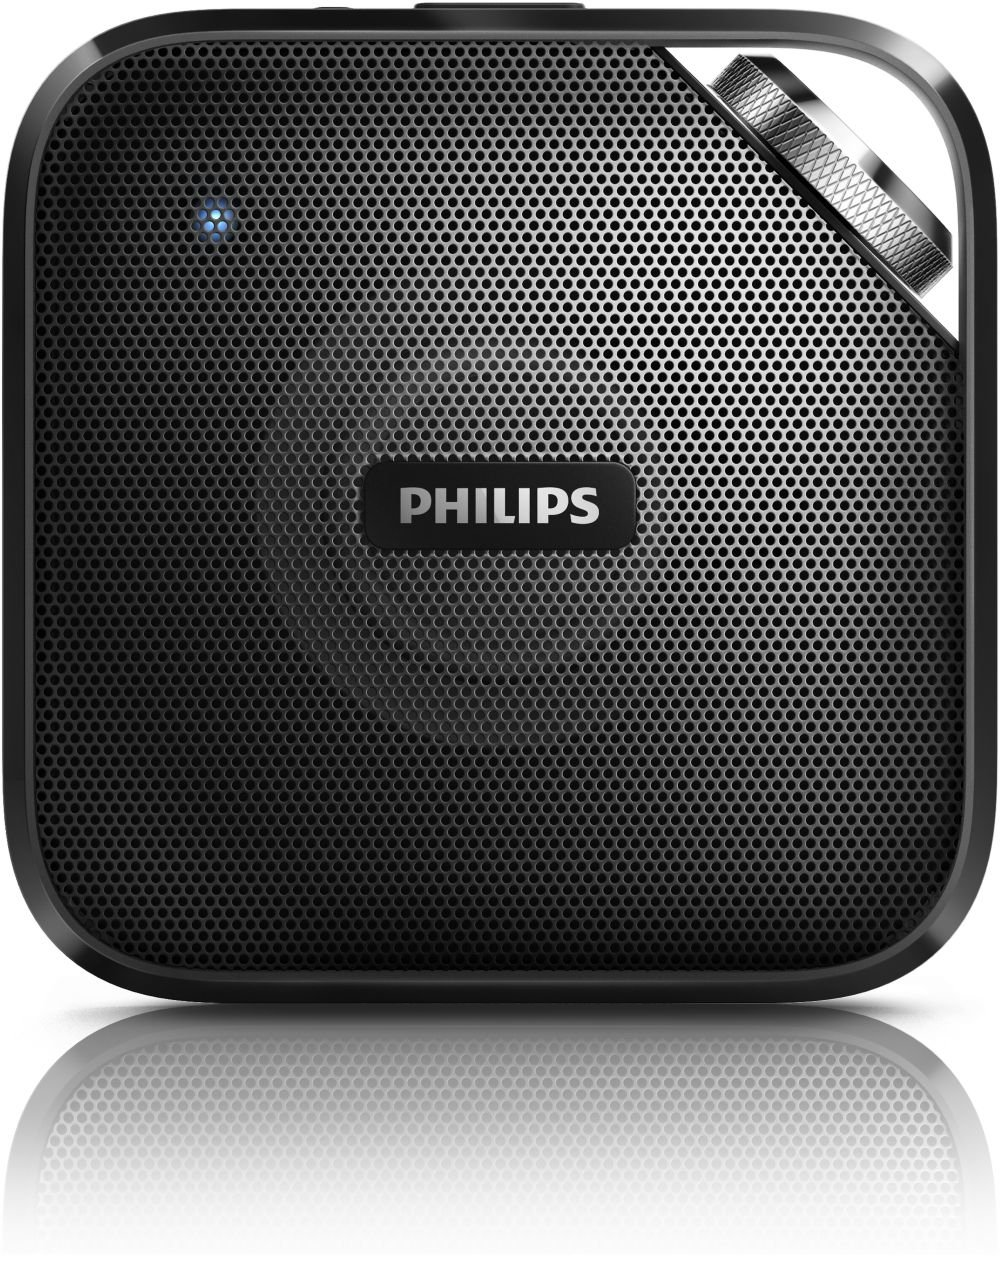 Philips Bt2500b/37 Compact Wireless Portable Bluetooth...